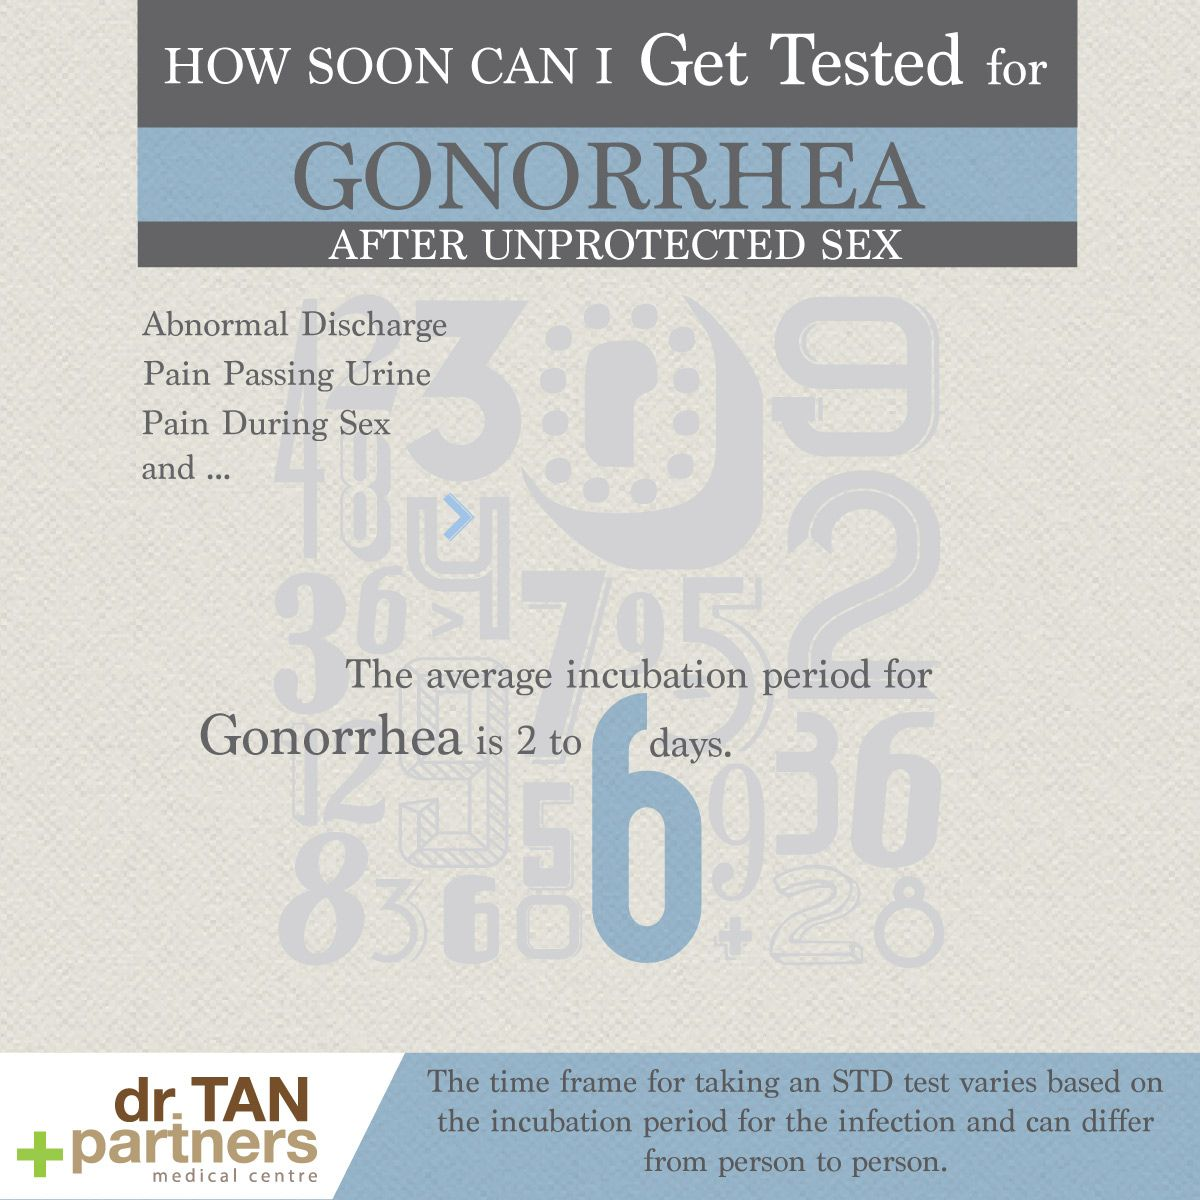 Pin by Dr Tan and Partners on STD Awareness | Pinterest | Health ...